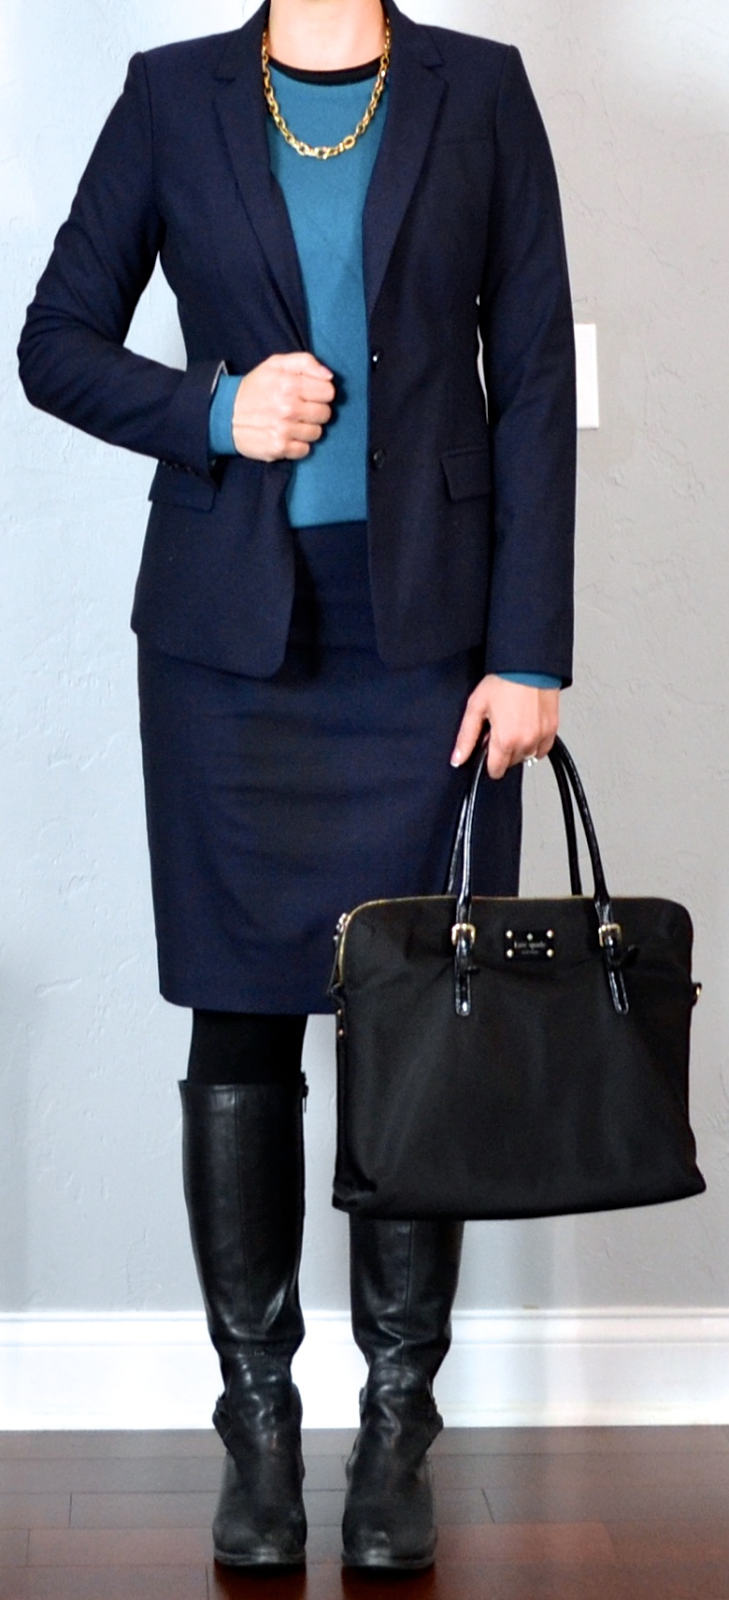 outfit post  navy suit jacket c39b07f84